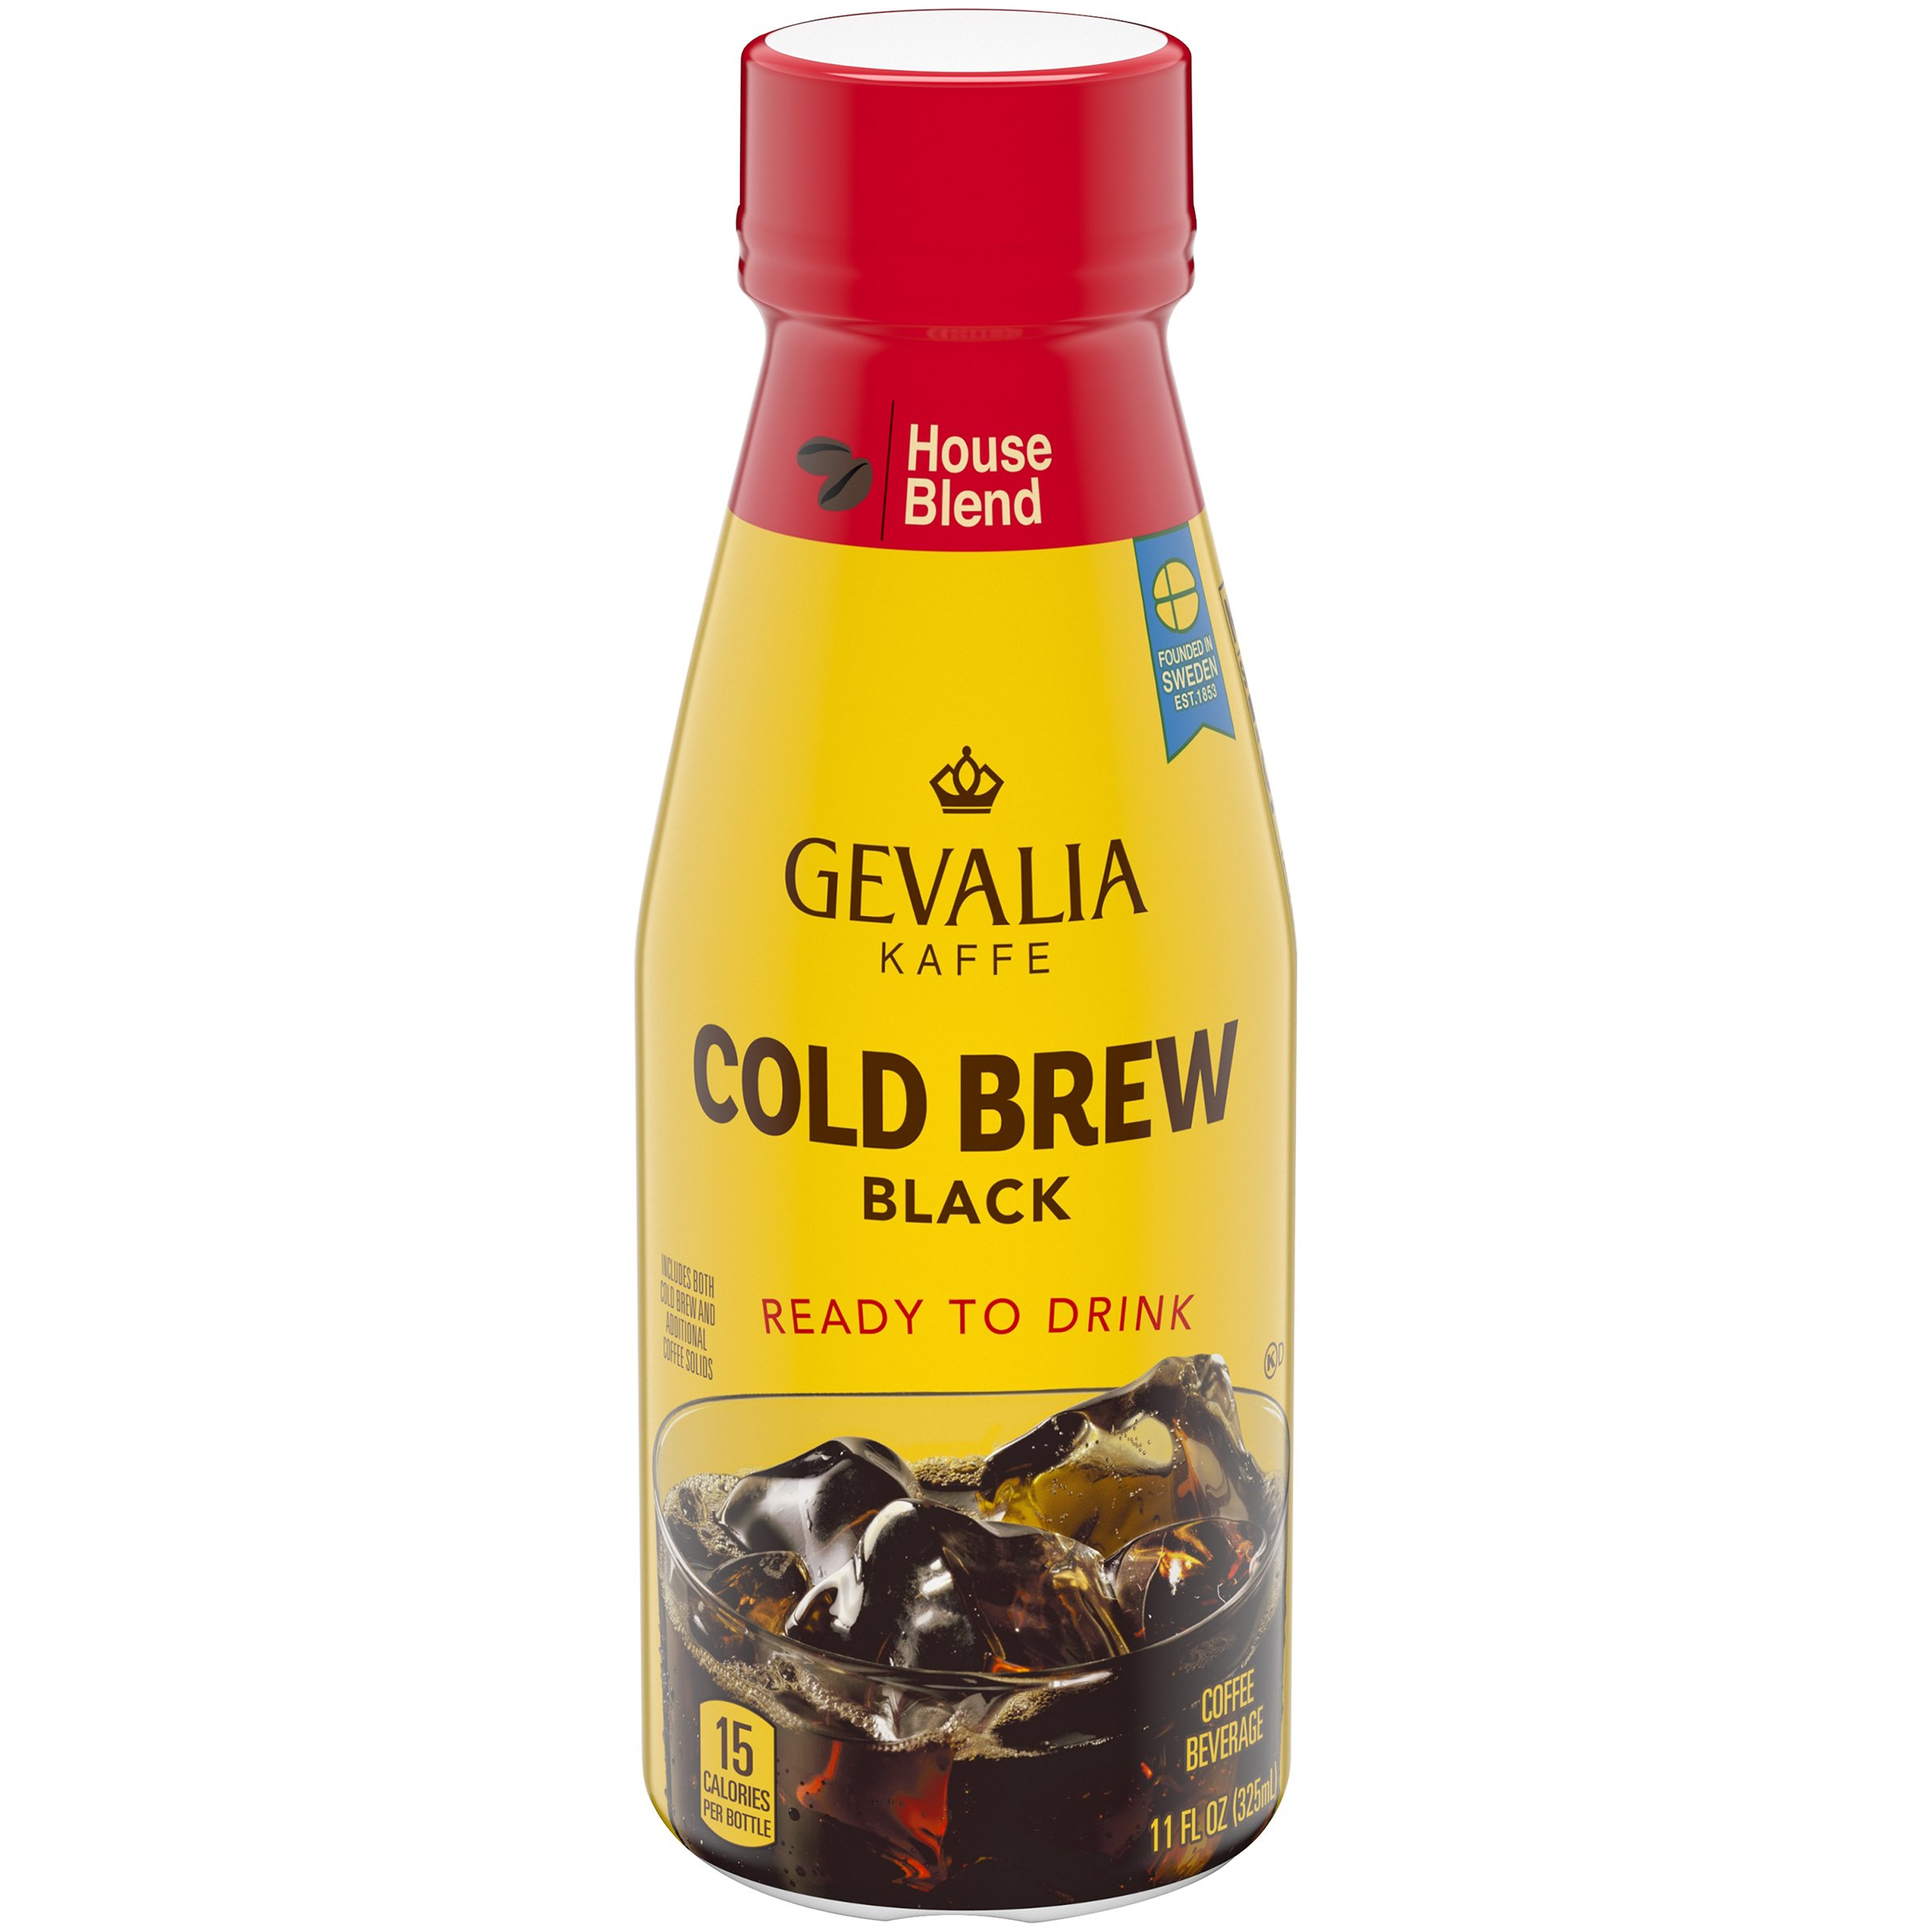 Gevalia Cold Brew Iced Coffee (11 oz Bottle, Pack of 12)